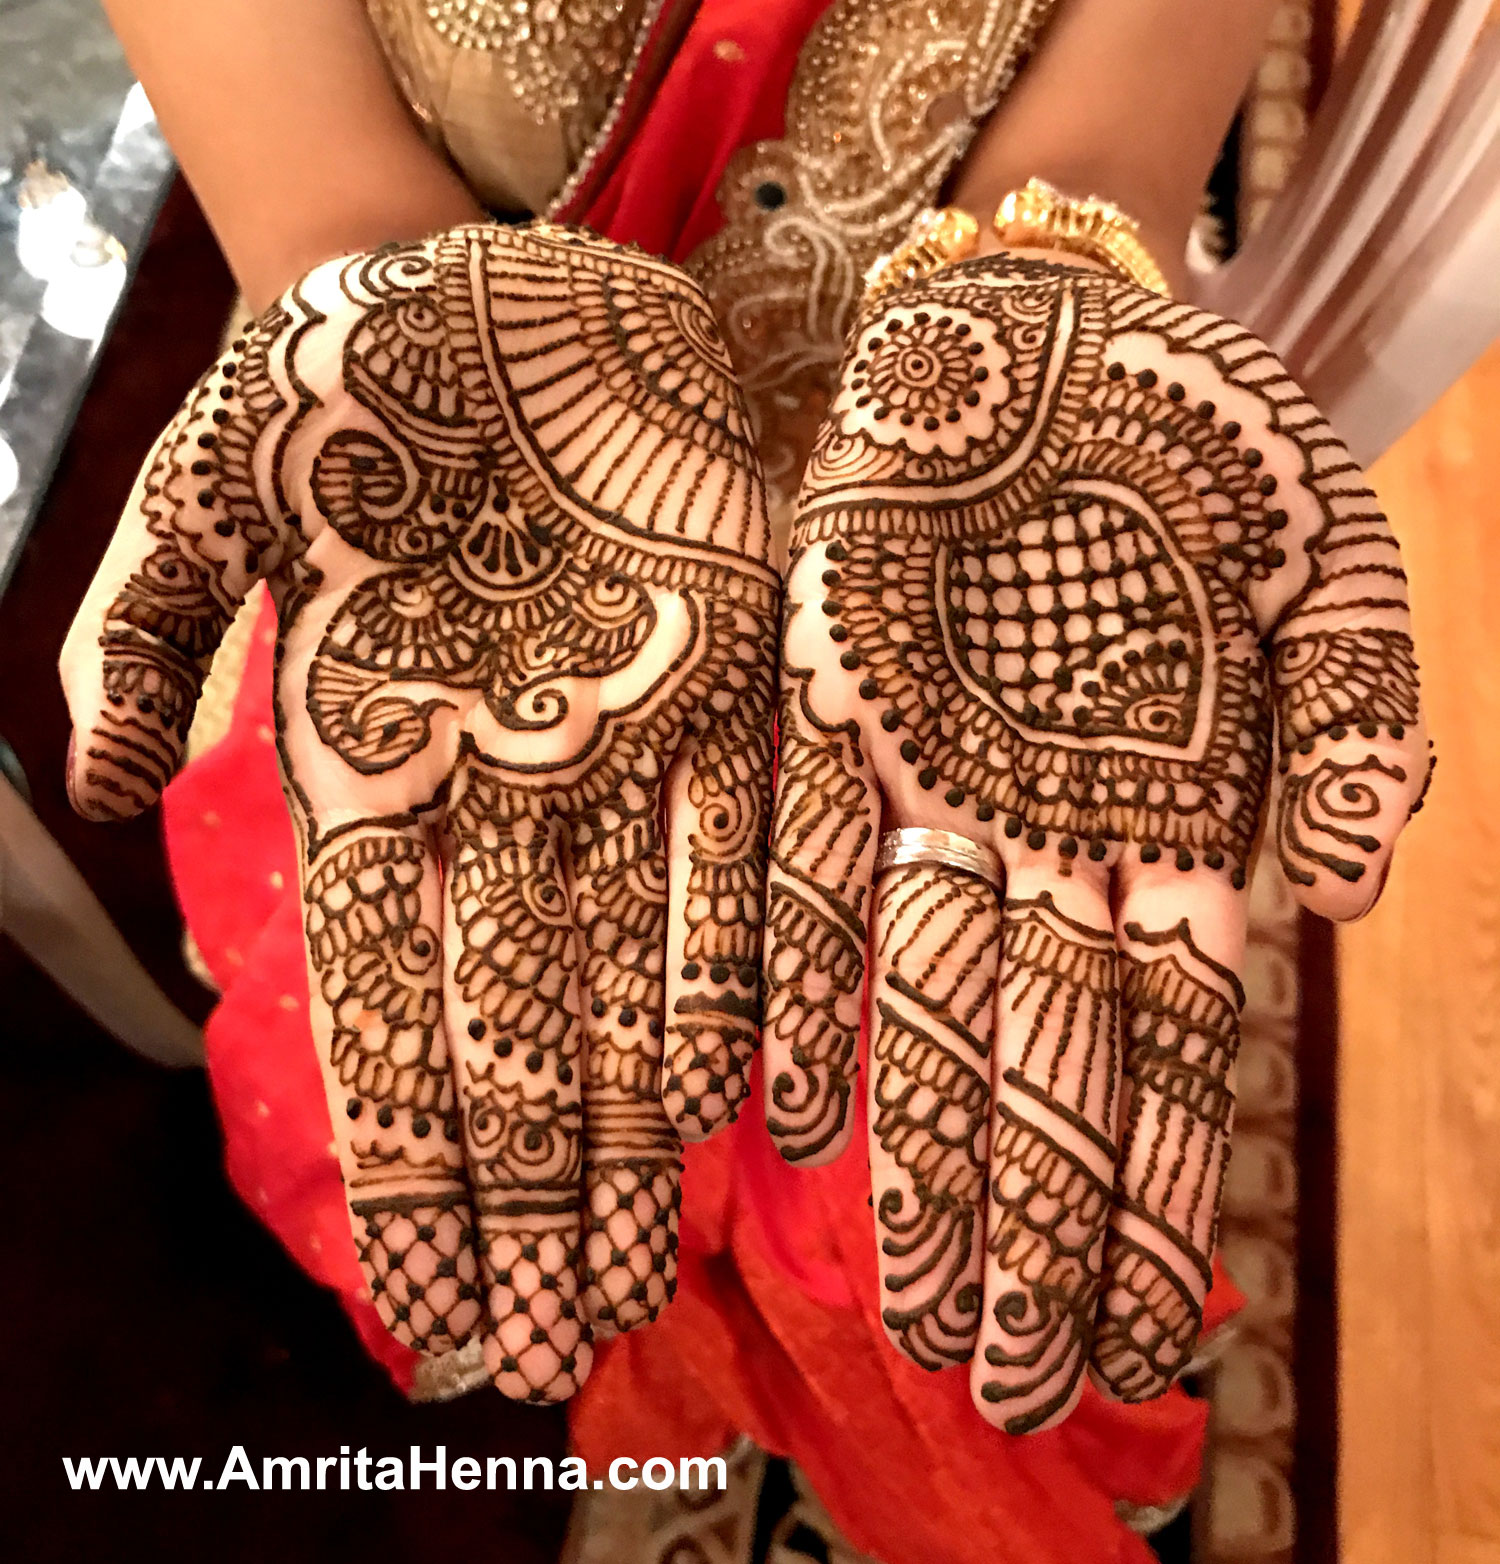 TOP 10 HENNA DESIGNS FOR DIWALI - 10 BEST DIWALI MEHNDI DESIGNS - TOP 10 STUNNING MEHENDI DESIGNS FOR DIWALI - 10 MUST TRY HENNA DESIGNS THIS DIWALI SEASON - DIWALI INDIAN FESTIVAL OF LIGHTS - 10 BEAUTIFUL HENNA DESIGNS FOR DIWALI - DIWALI HENNA IDEAS - BEST MEHENDI DESIGNS FOR DIWALI - HAPPY DIWALI - DIWALI PARTY IDEAS - INDIAN TRADITIONAL MEHENDI DESIGNS - TOP 10 NEW AND UNIQUE HENNA DESIGNS FOR DEEPAWALI - 10 AMAZING MEHNDI DESIGNS YOU MUST TRY THIS DIWALI